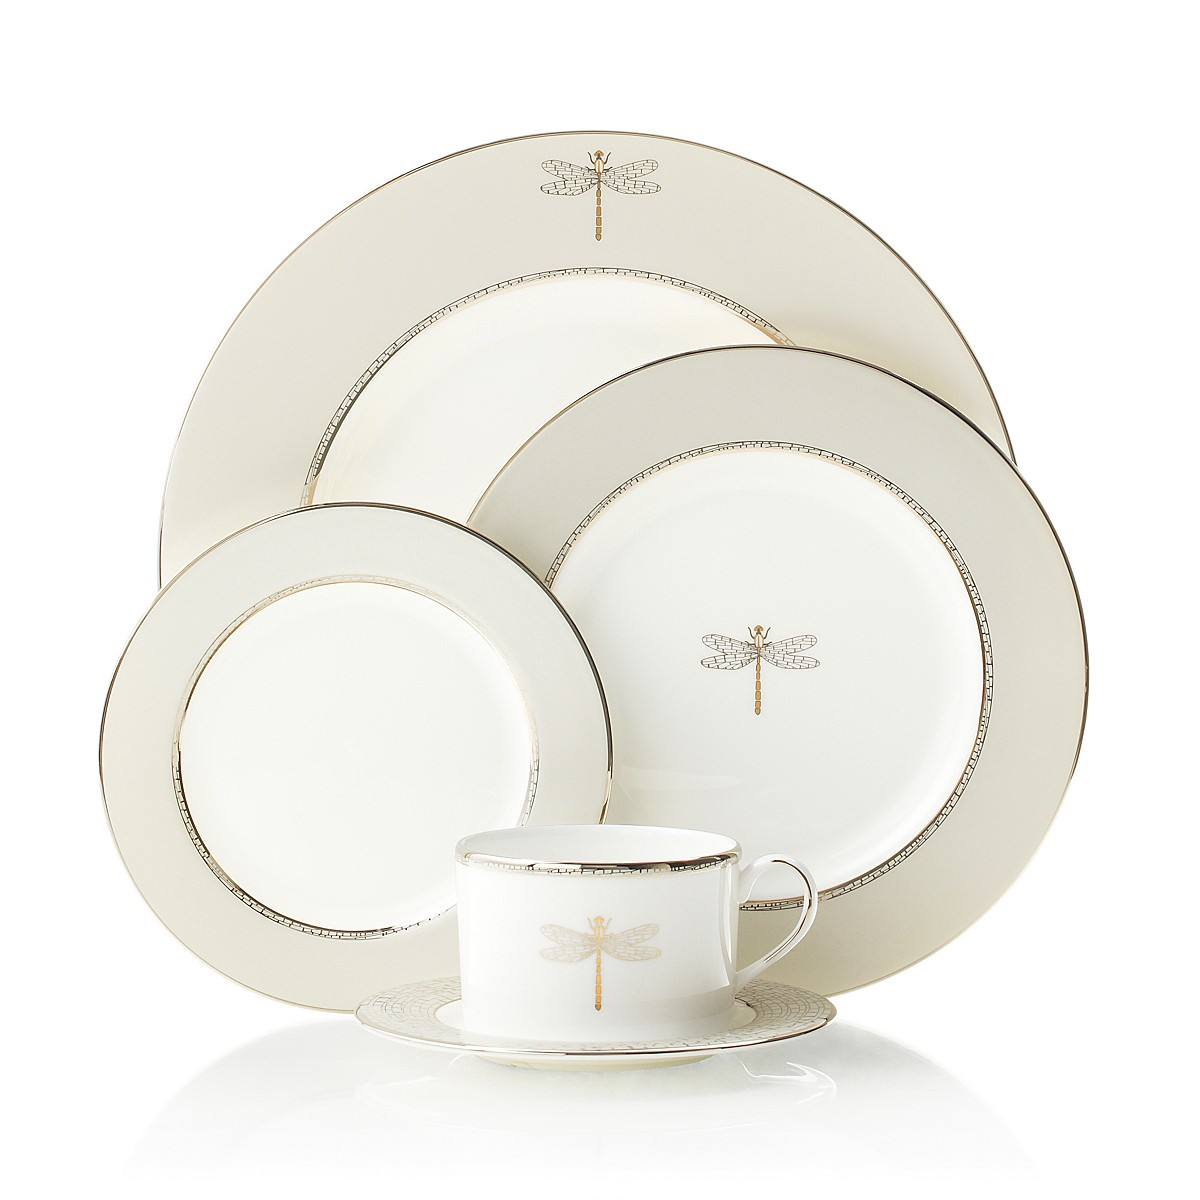 Crystal Dinnerware Set | Kate Spade China | Kate Spade New York China